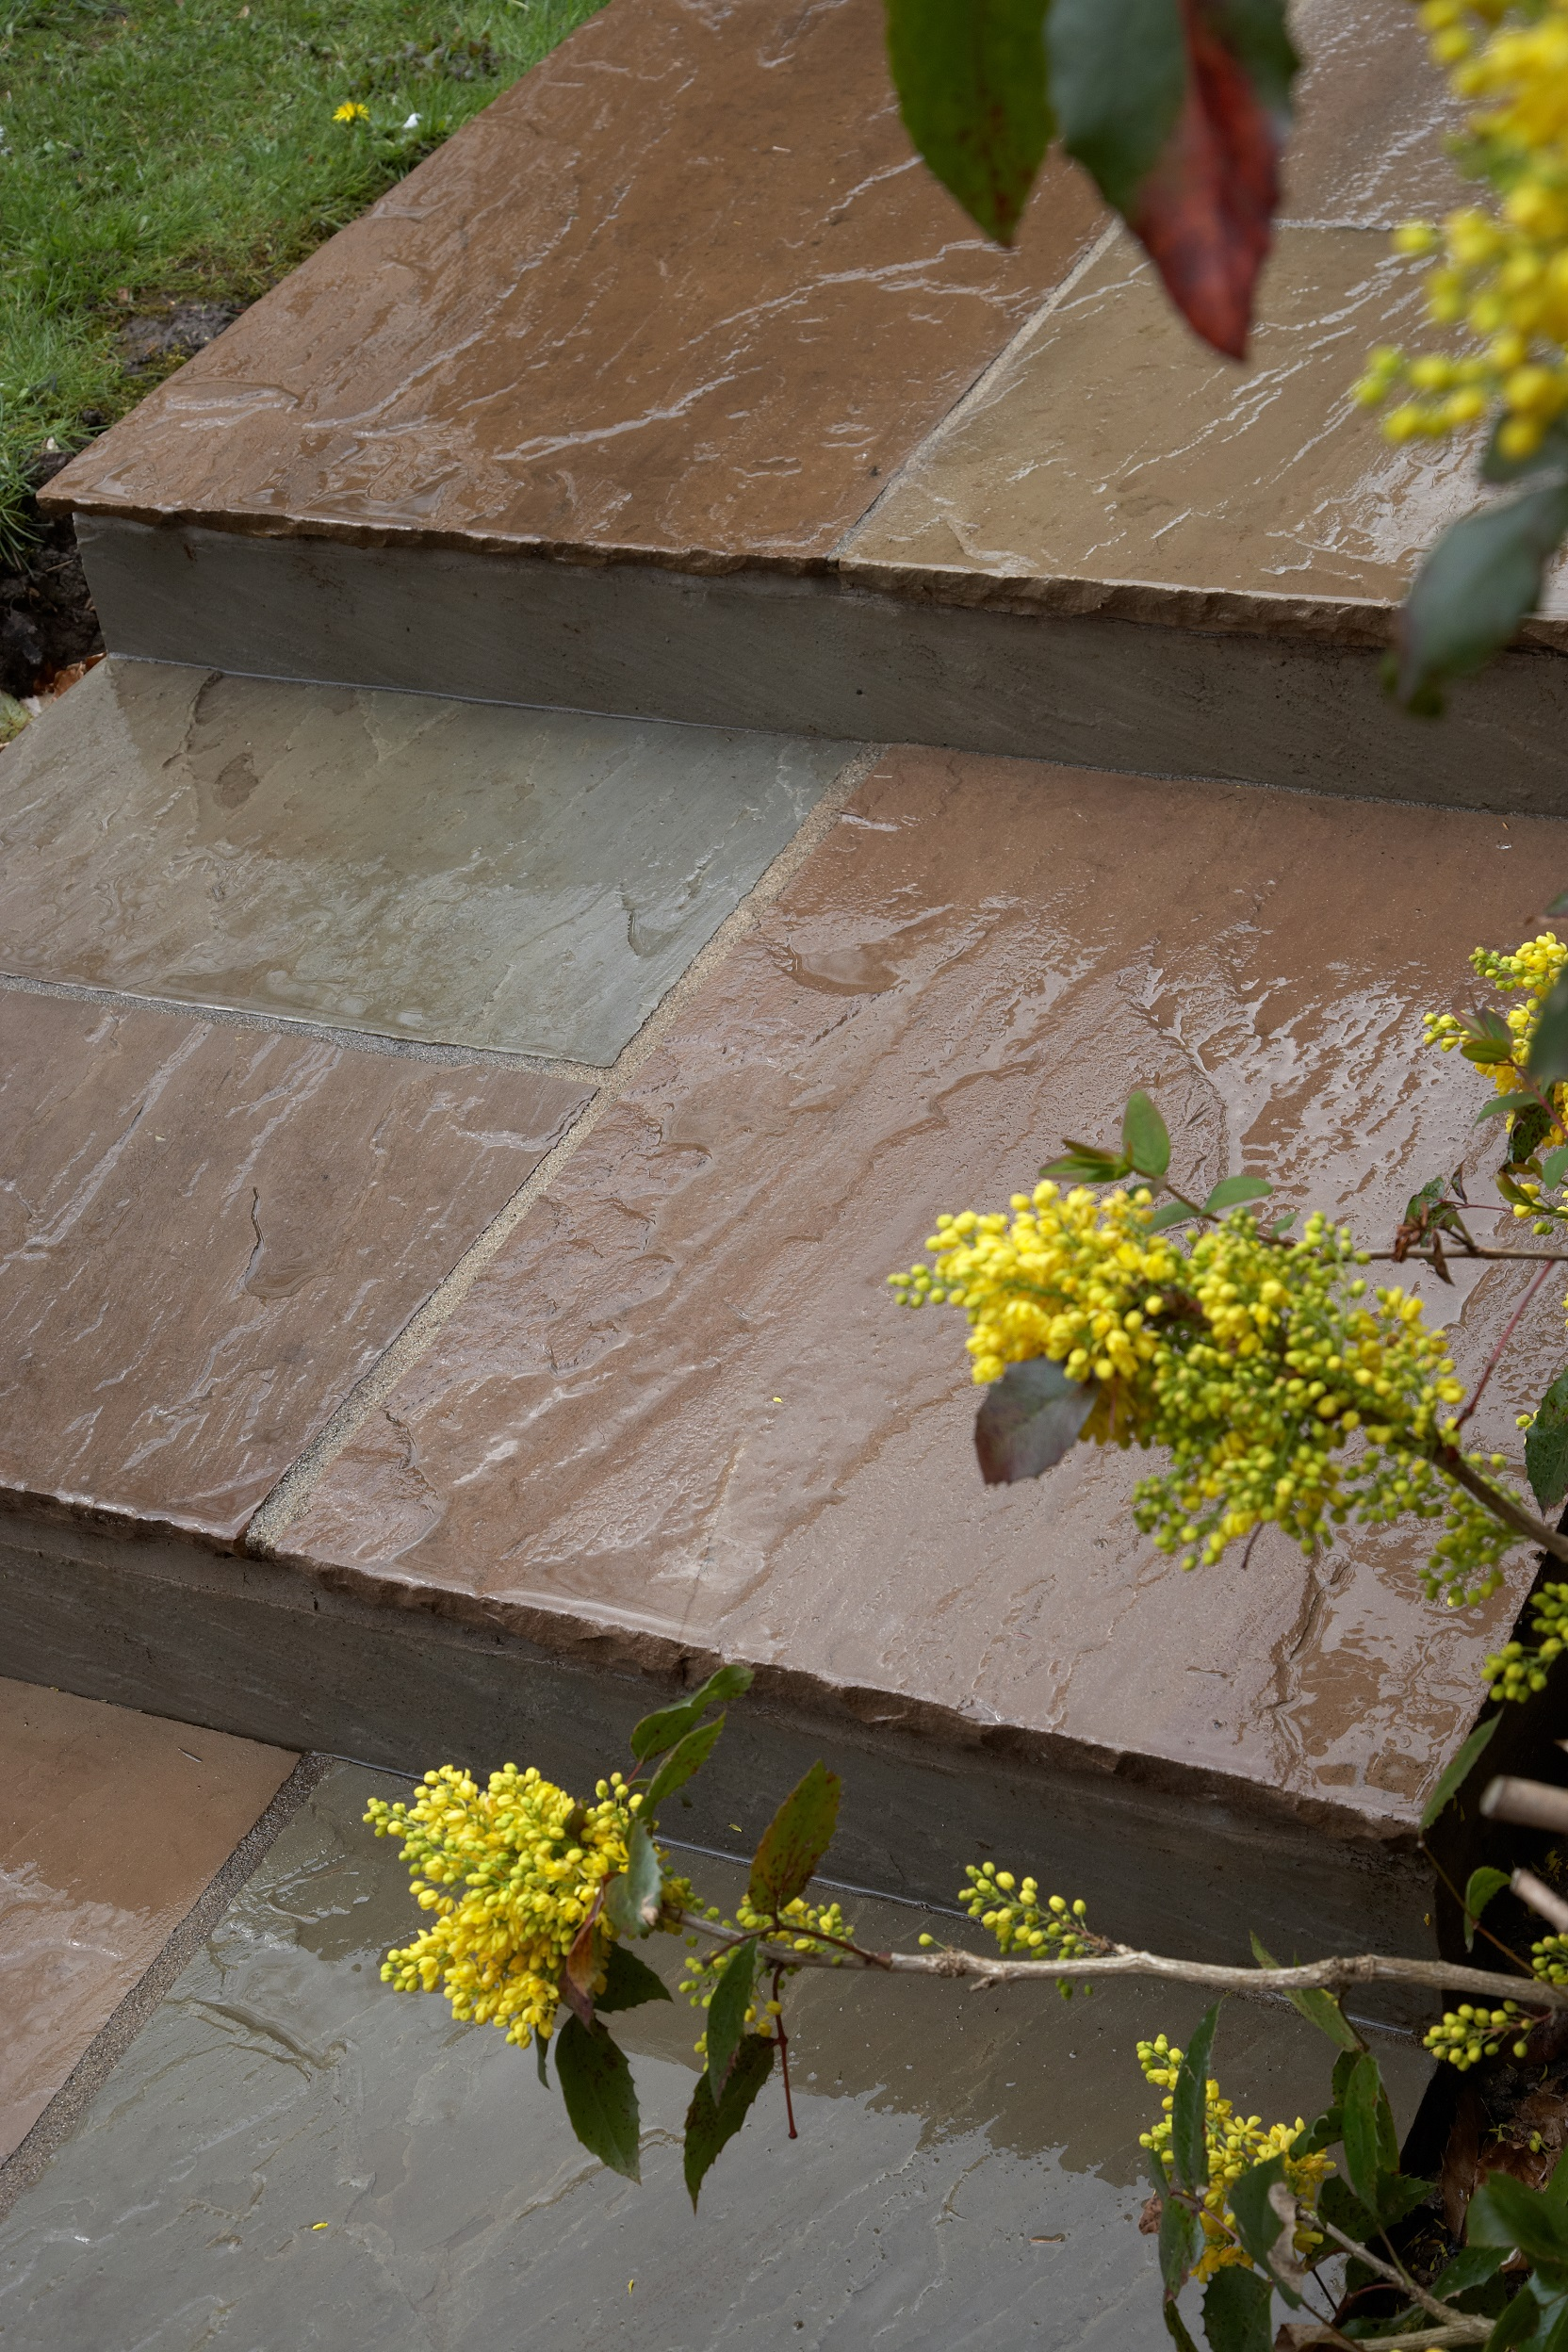 Landscaping in Baldwins Gate - Indian Stone Steps